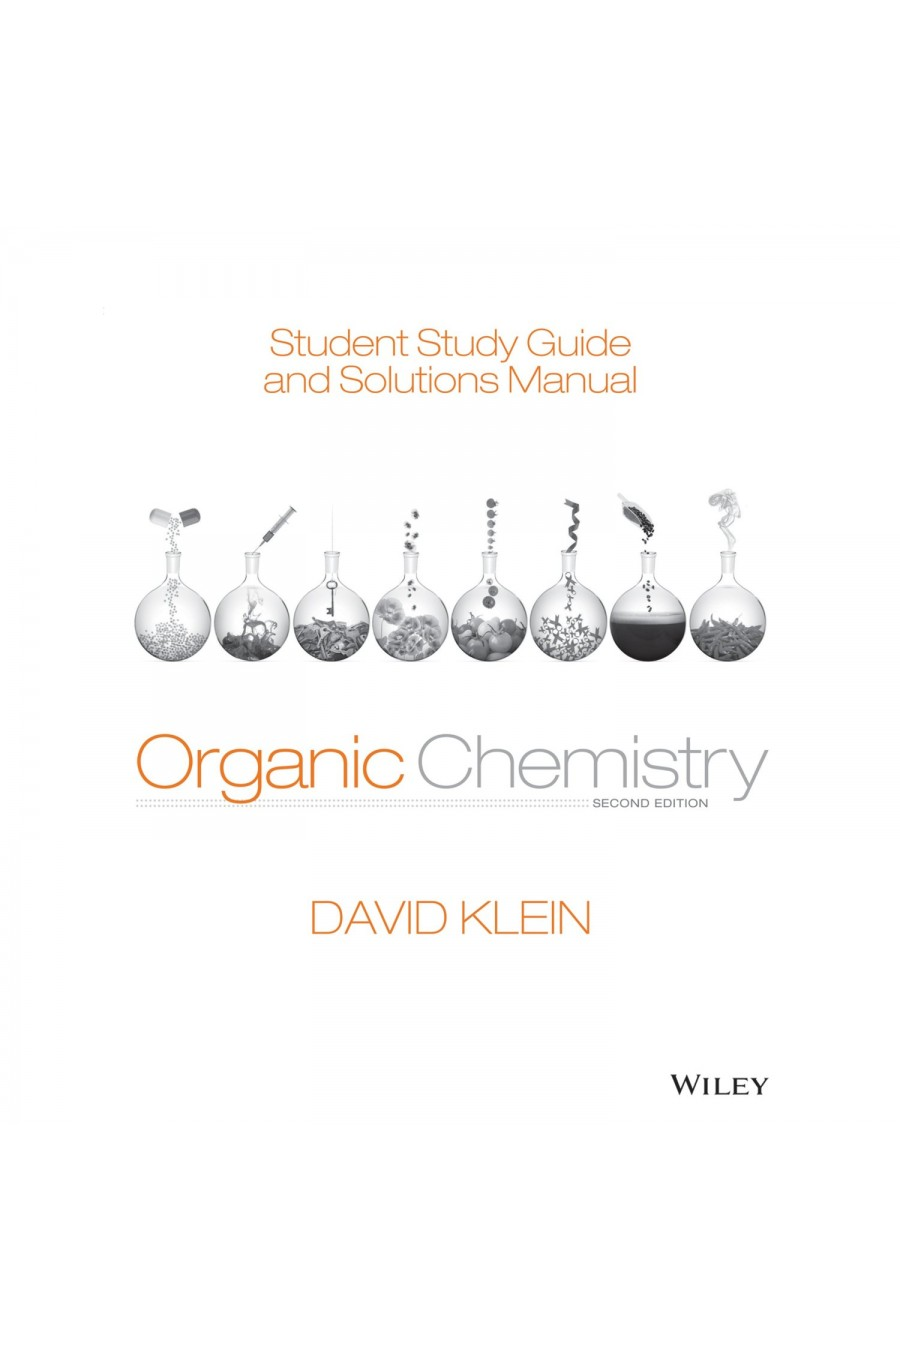 organic chemistry student study guide and solutions manual klein pdf